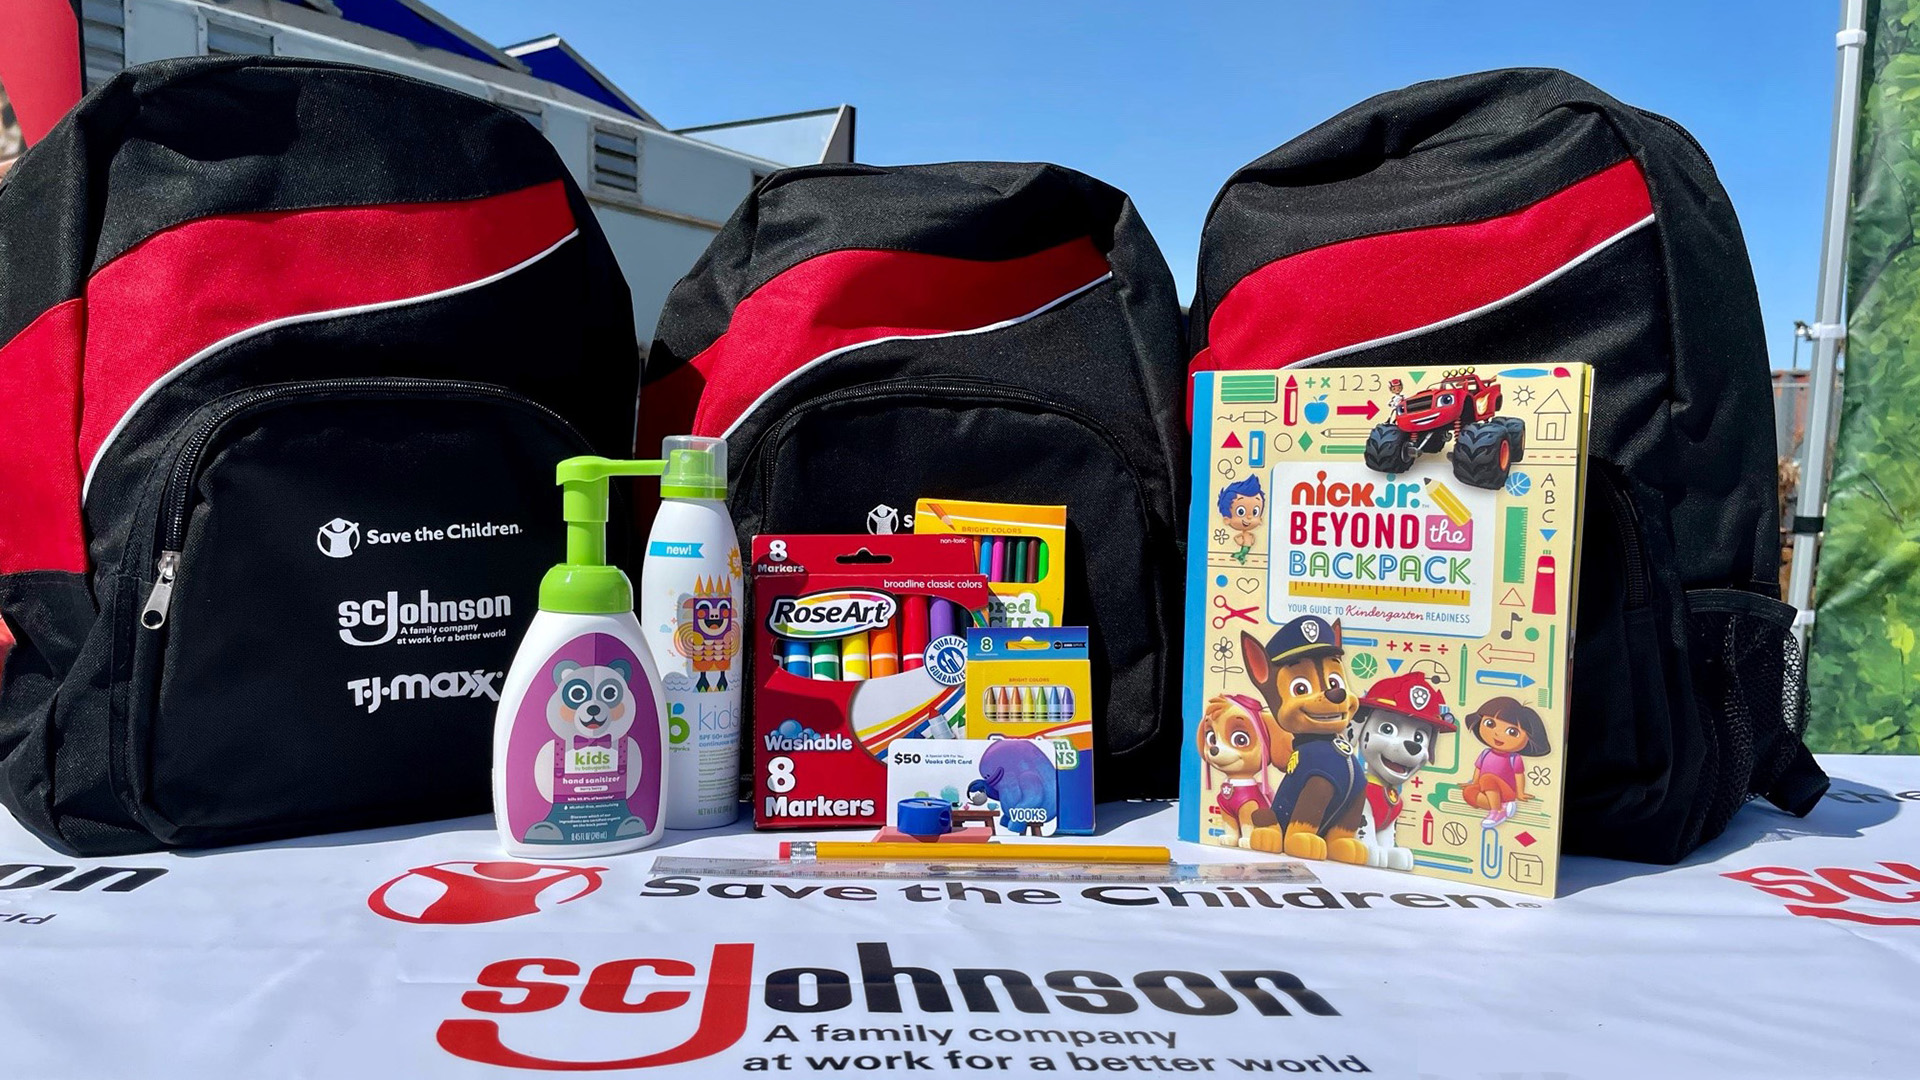 SC Johnson sponsored backpack and material on table